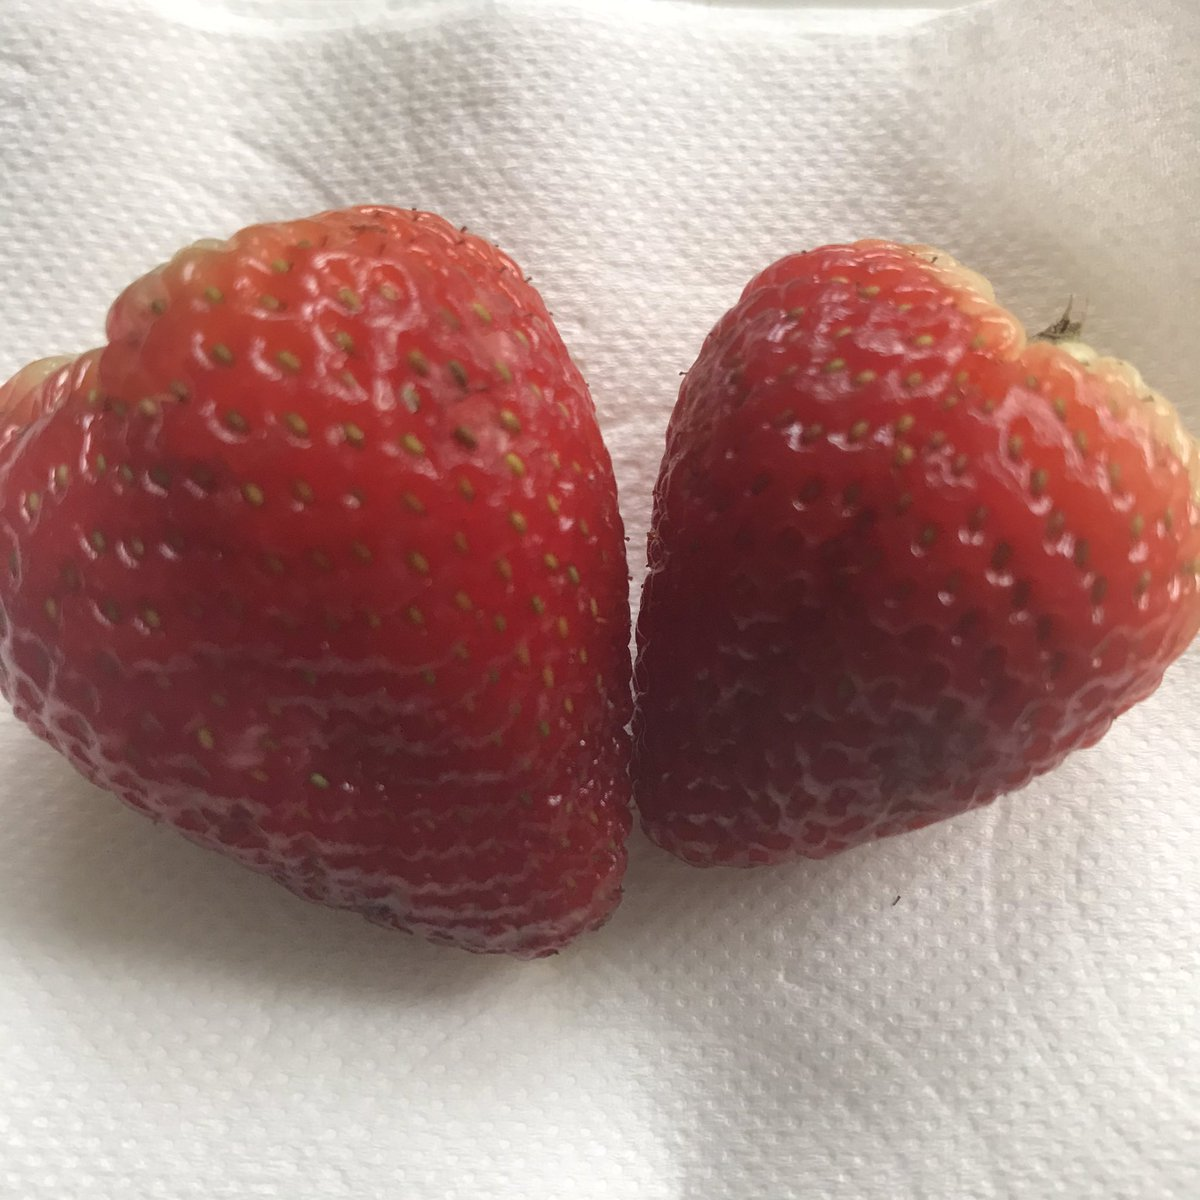 @RyanSeacrest eating Strawberries ,while i listen to u on the radio